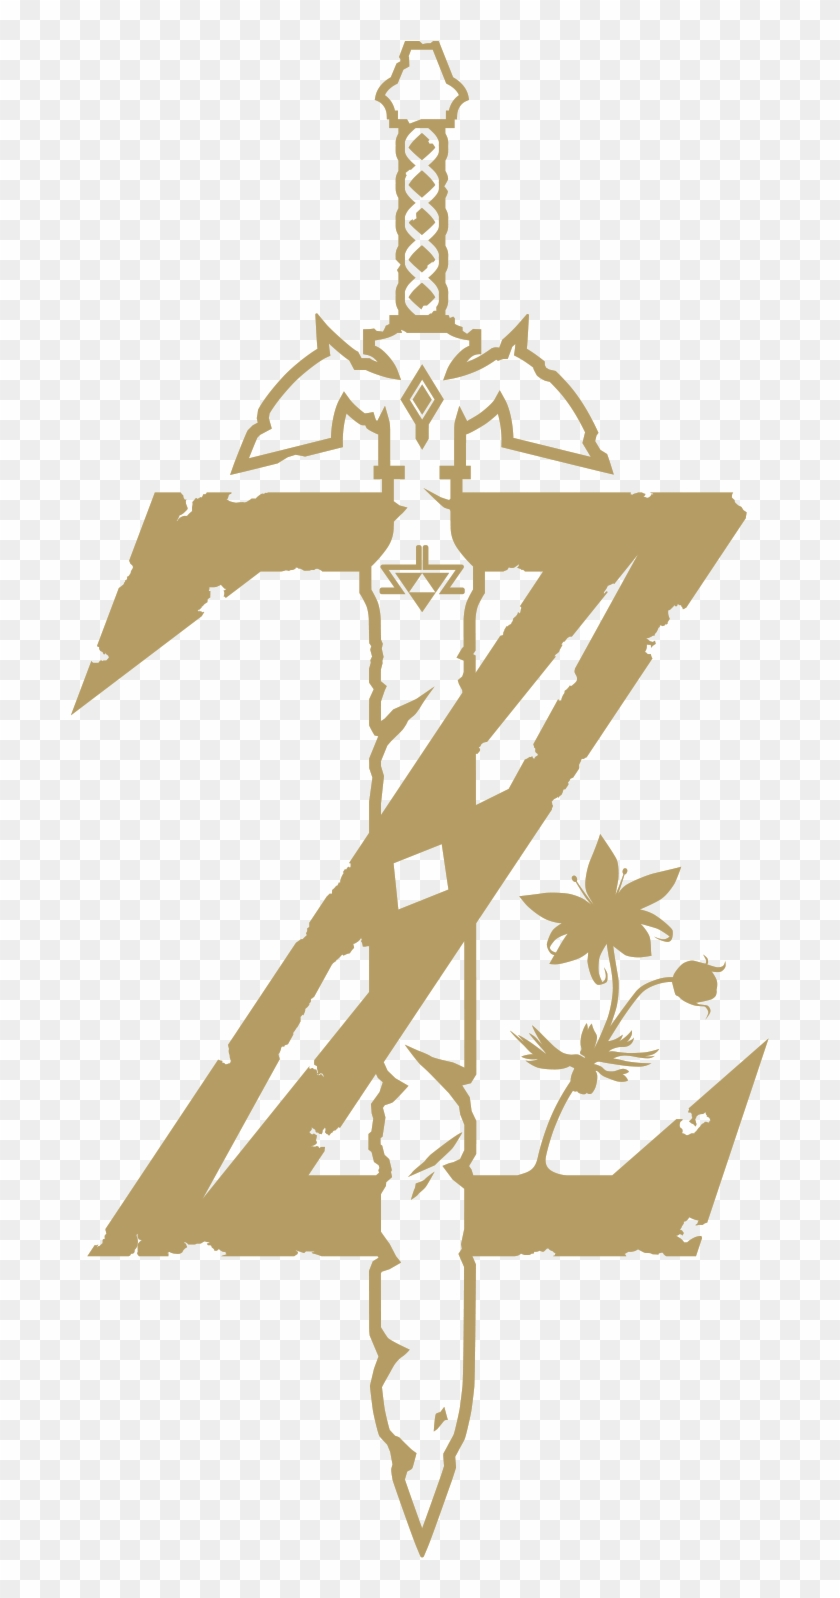 Breath Of The Wild Logo Png.